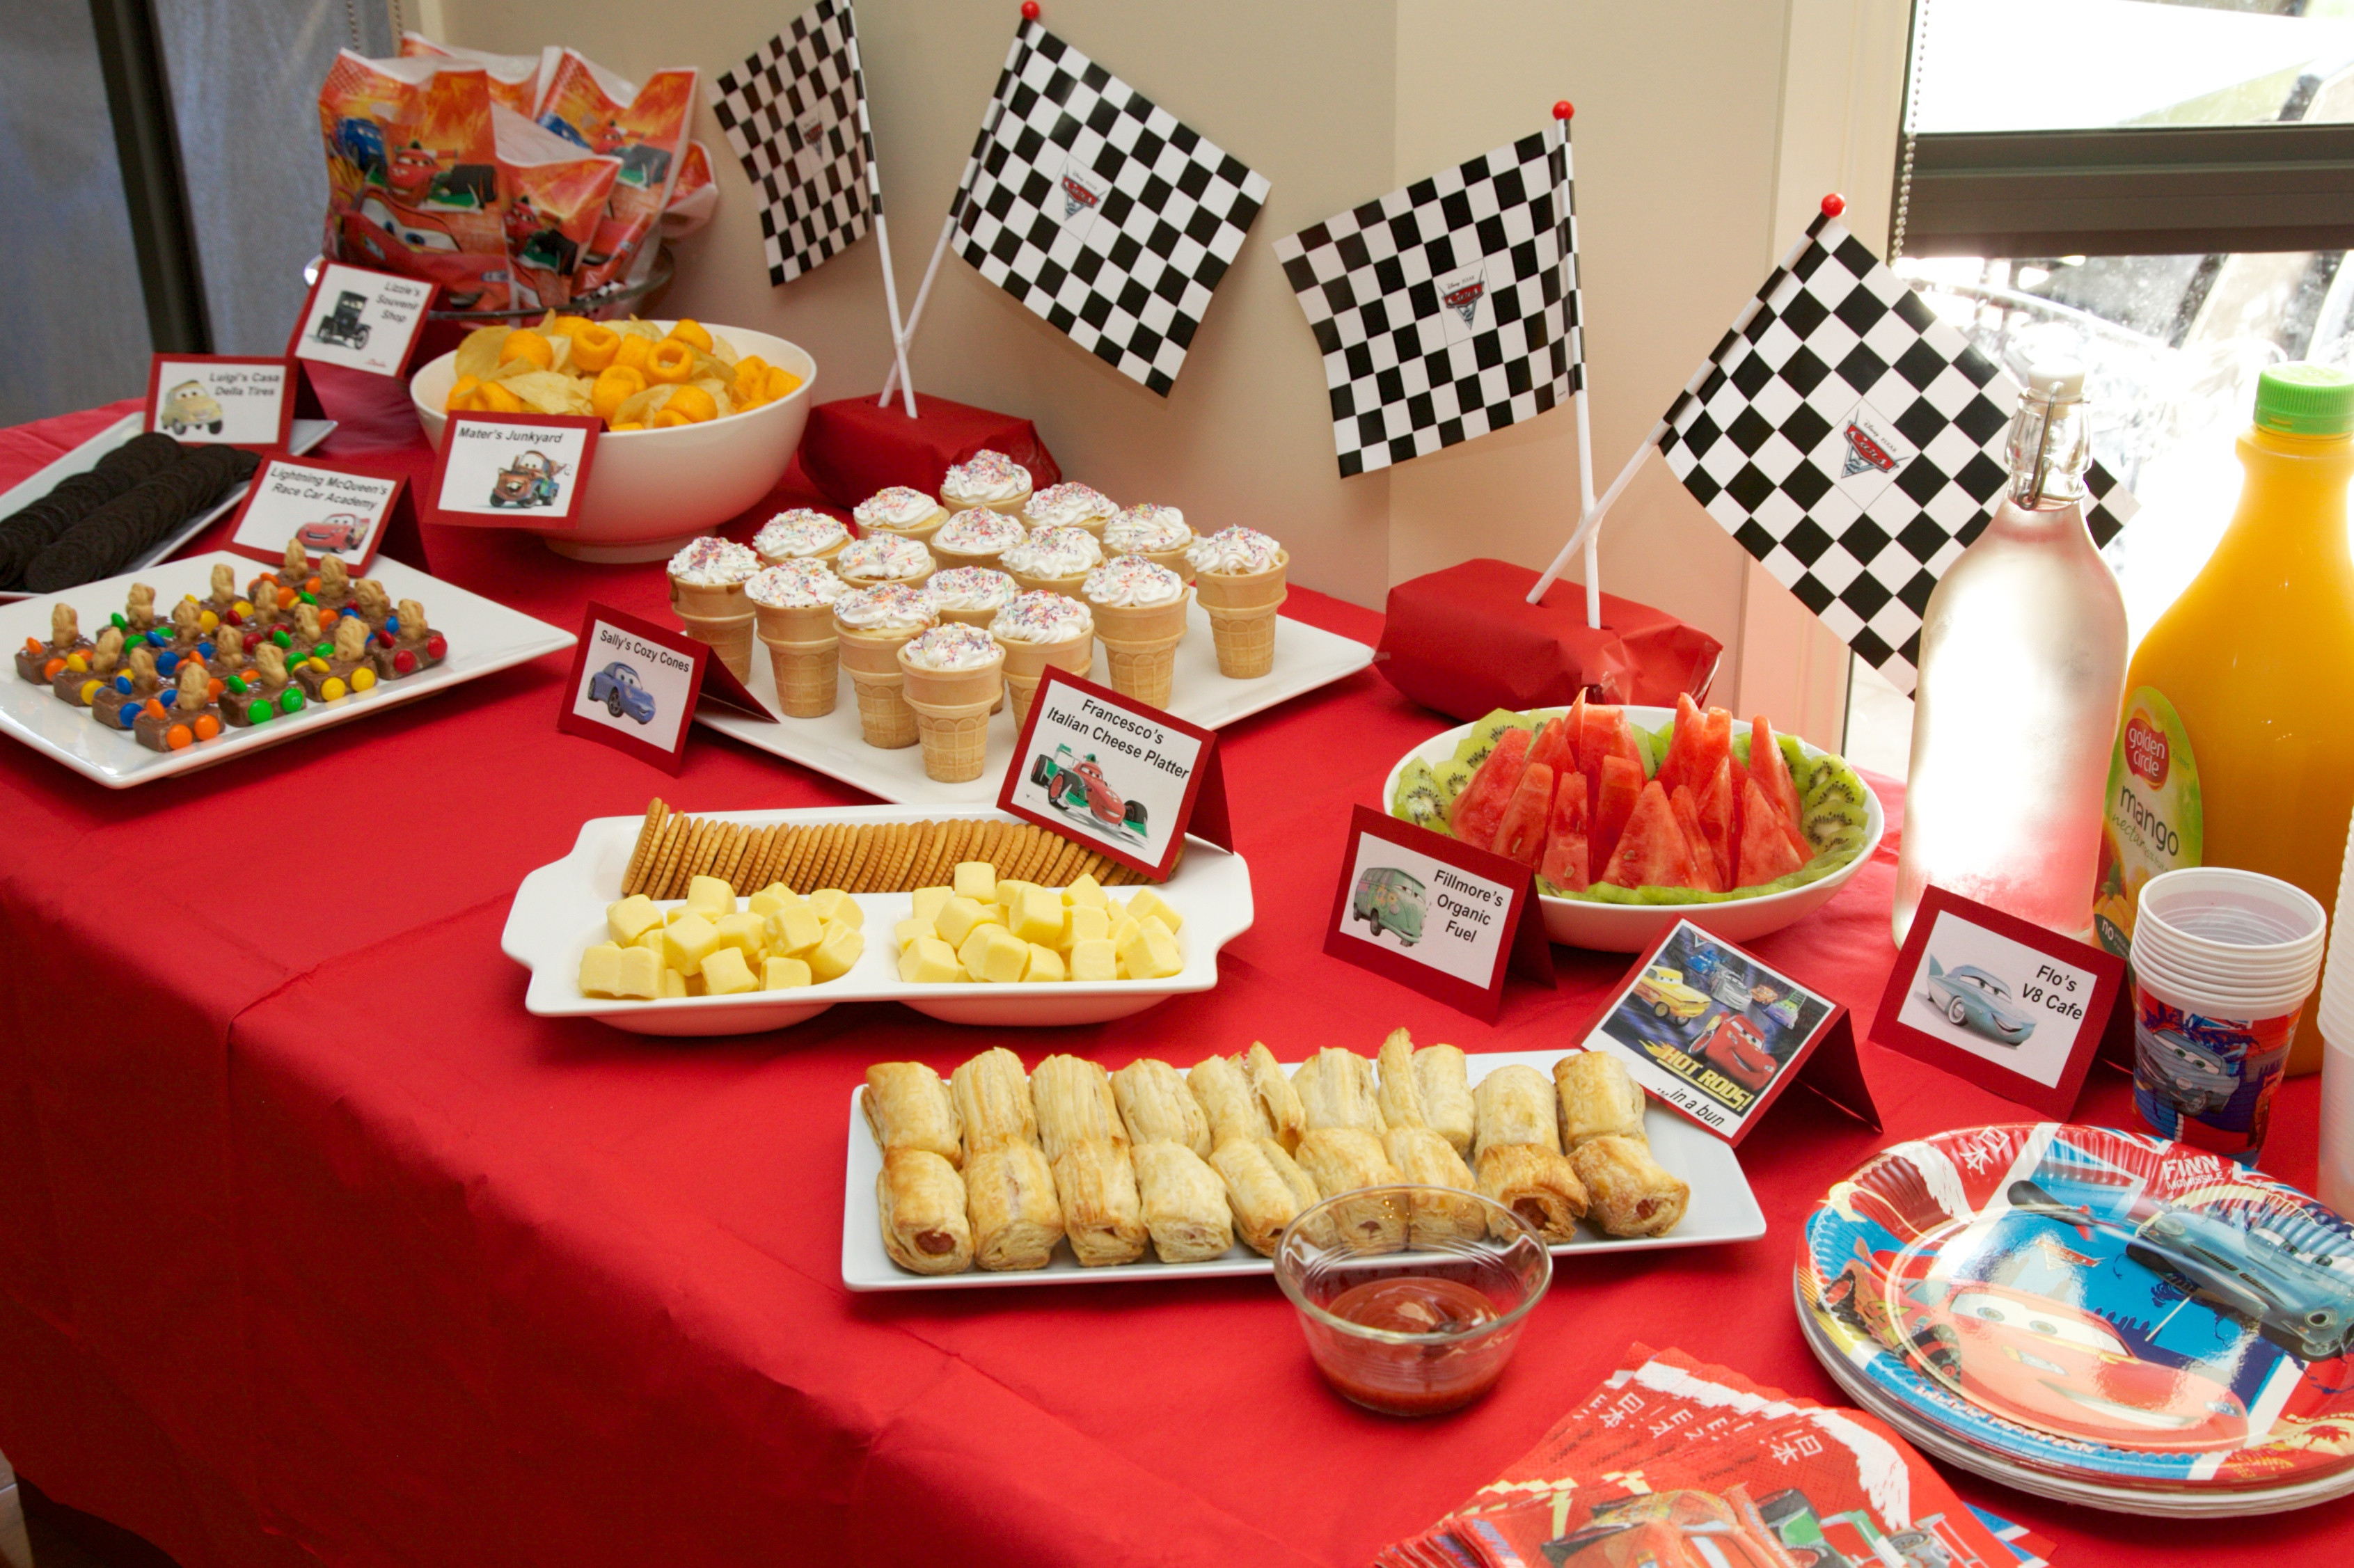 Best ideas about Birthday Party Menu . Save or Pin Disney Cars Birthday Party on a Bud Kidz Activities Now.